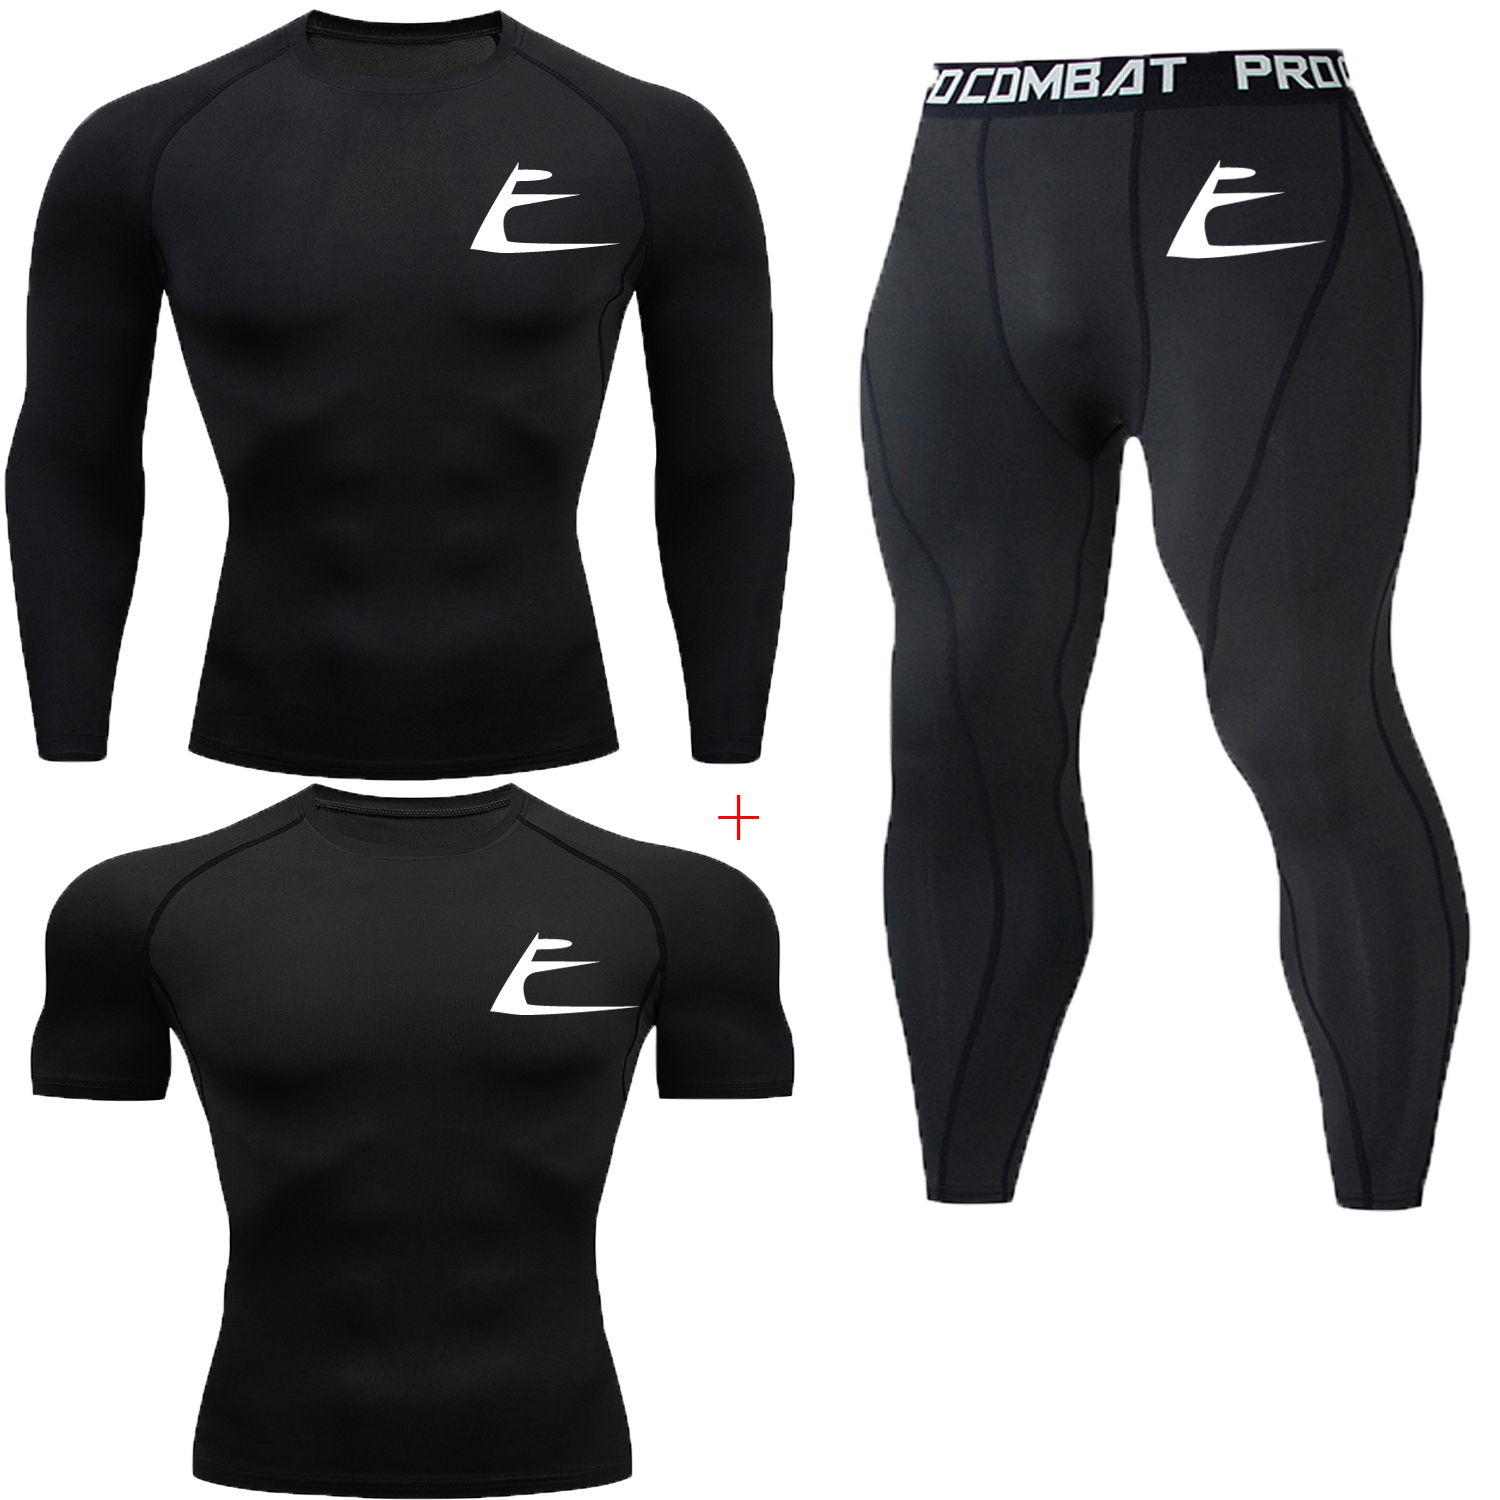 Three-piece Quick-drying Slim Printed Tshirt Compression Trousers Bodybuilding O-neck Short-sleeved + Long-sleeved Men's T-shirt